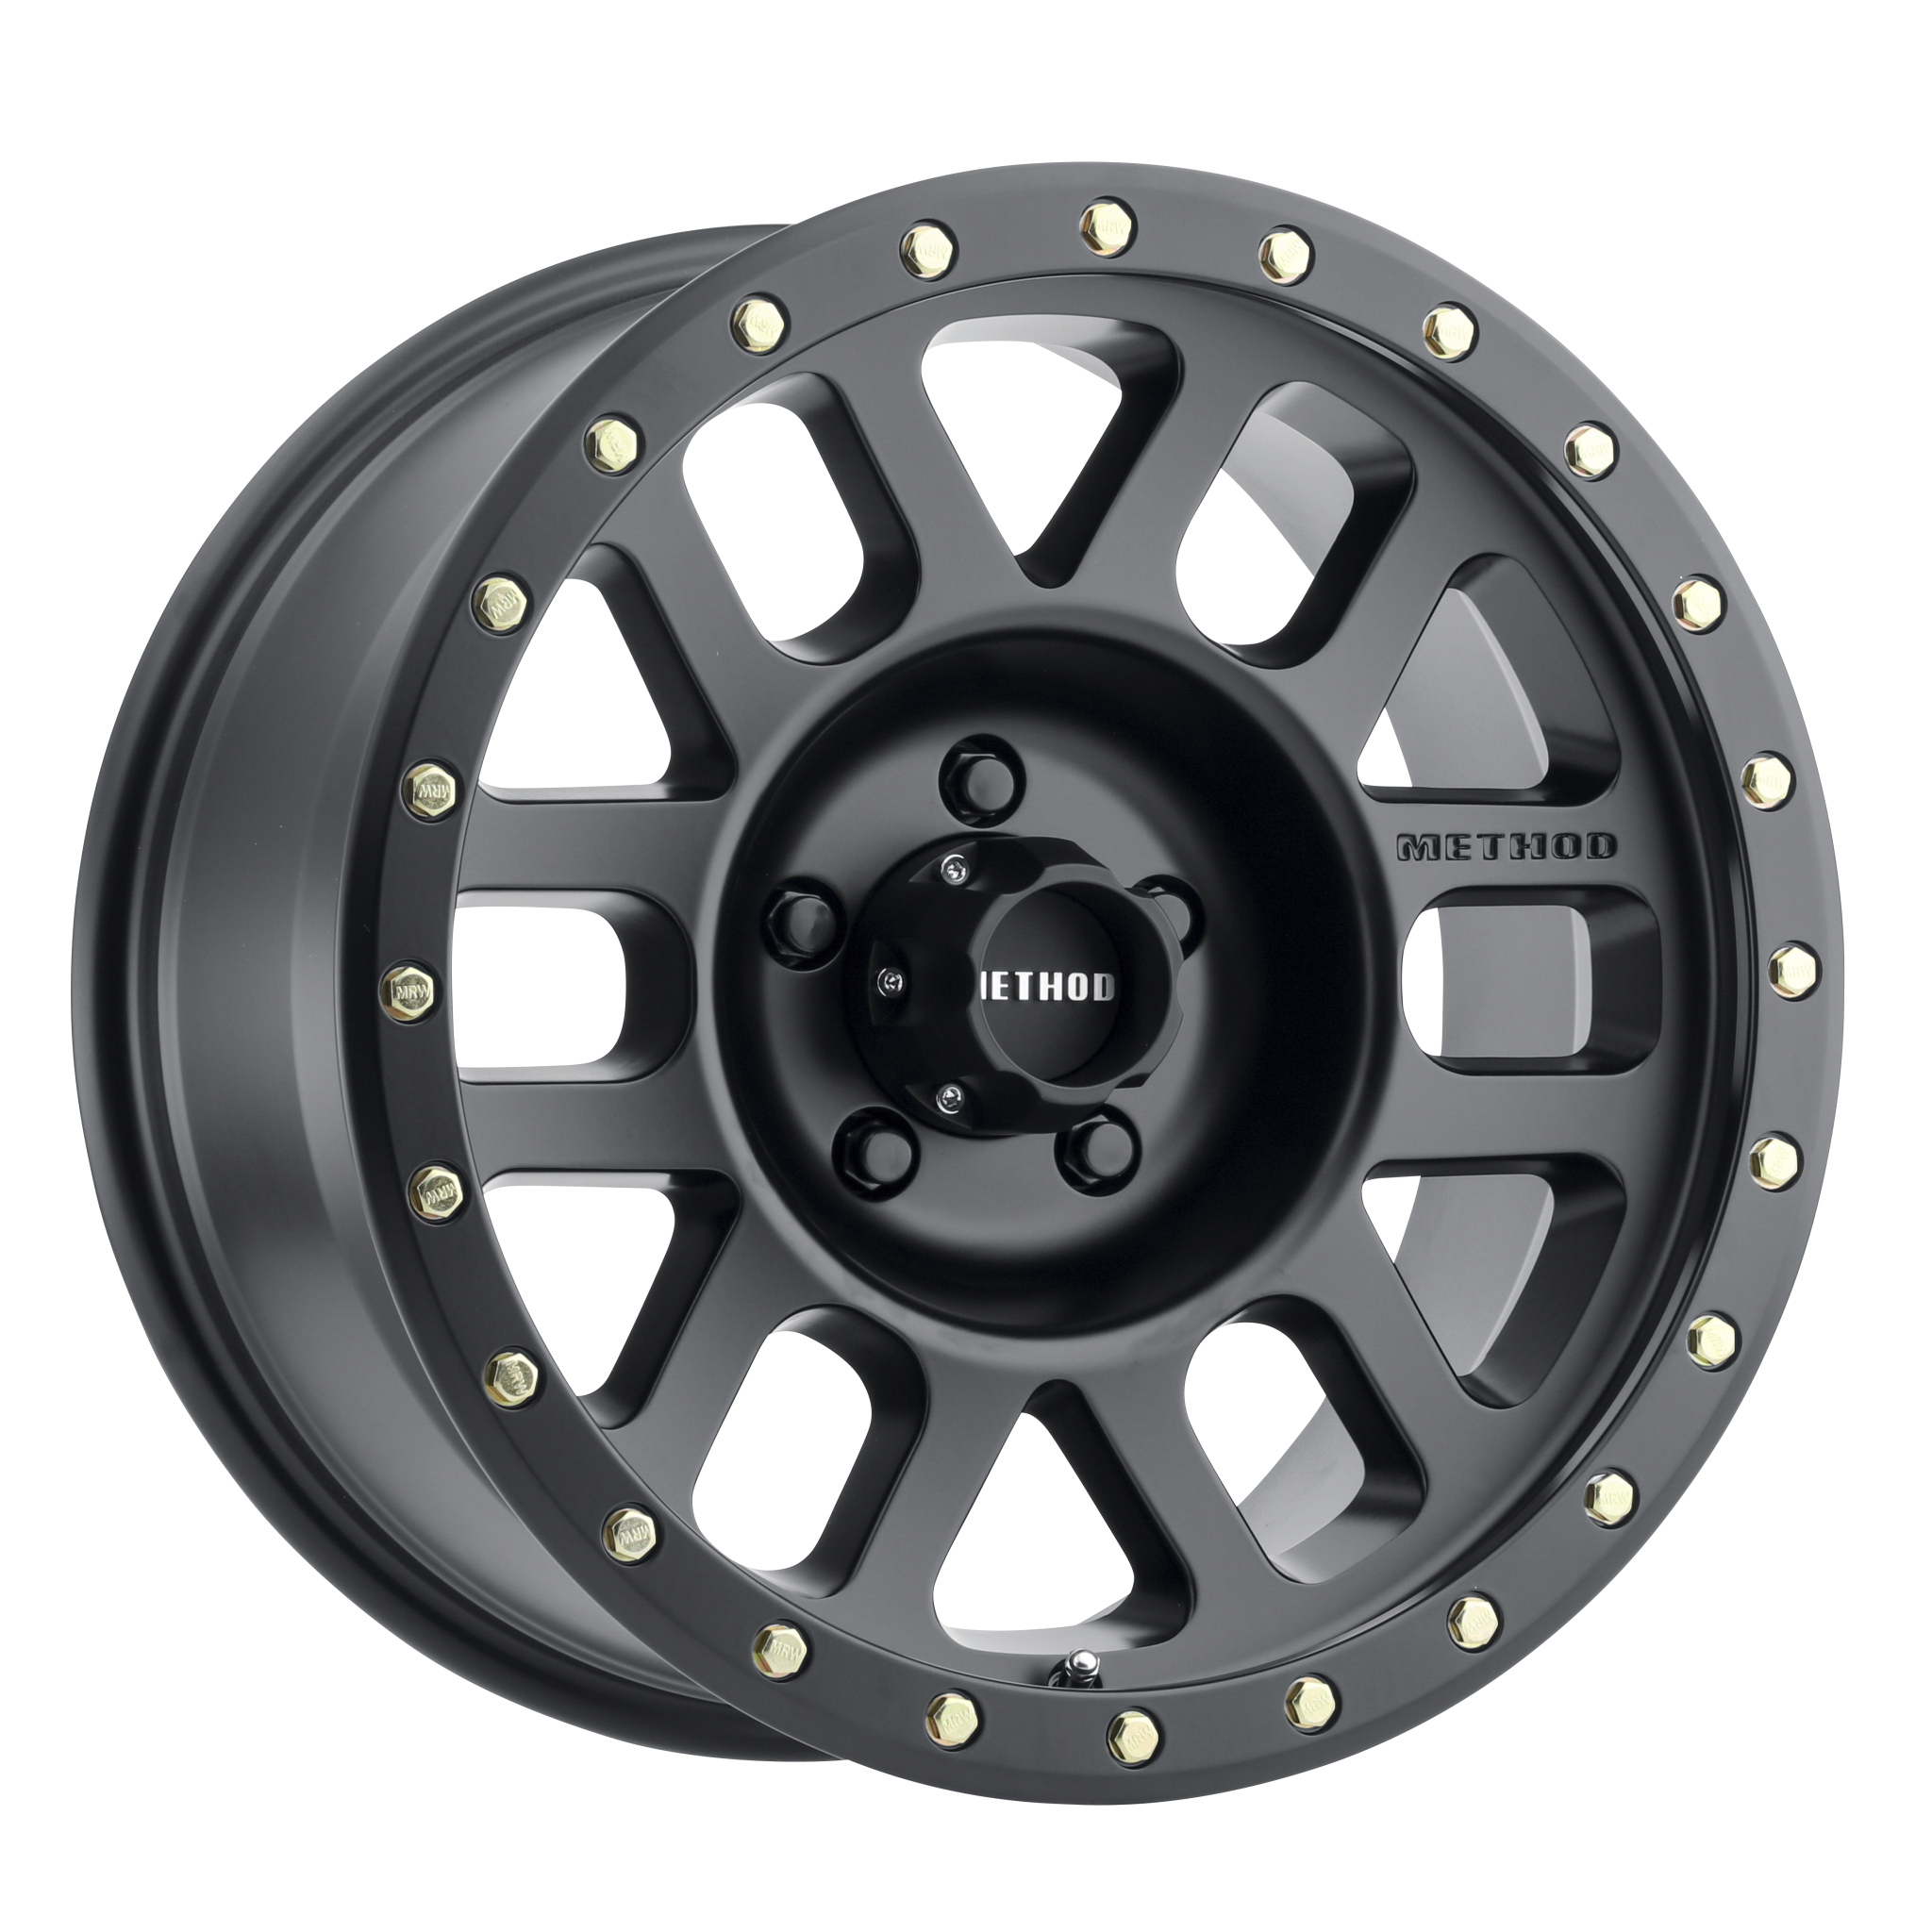 Method 309 Grid, 18x9, 0mm Offset, 5x150, 116.5mm Centerbore, Matte Black